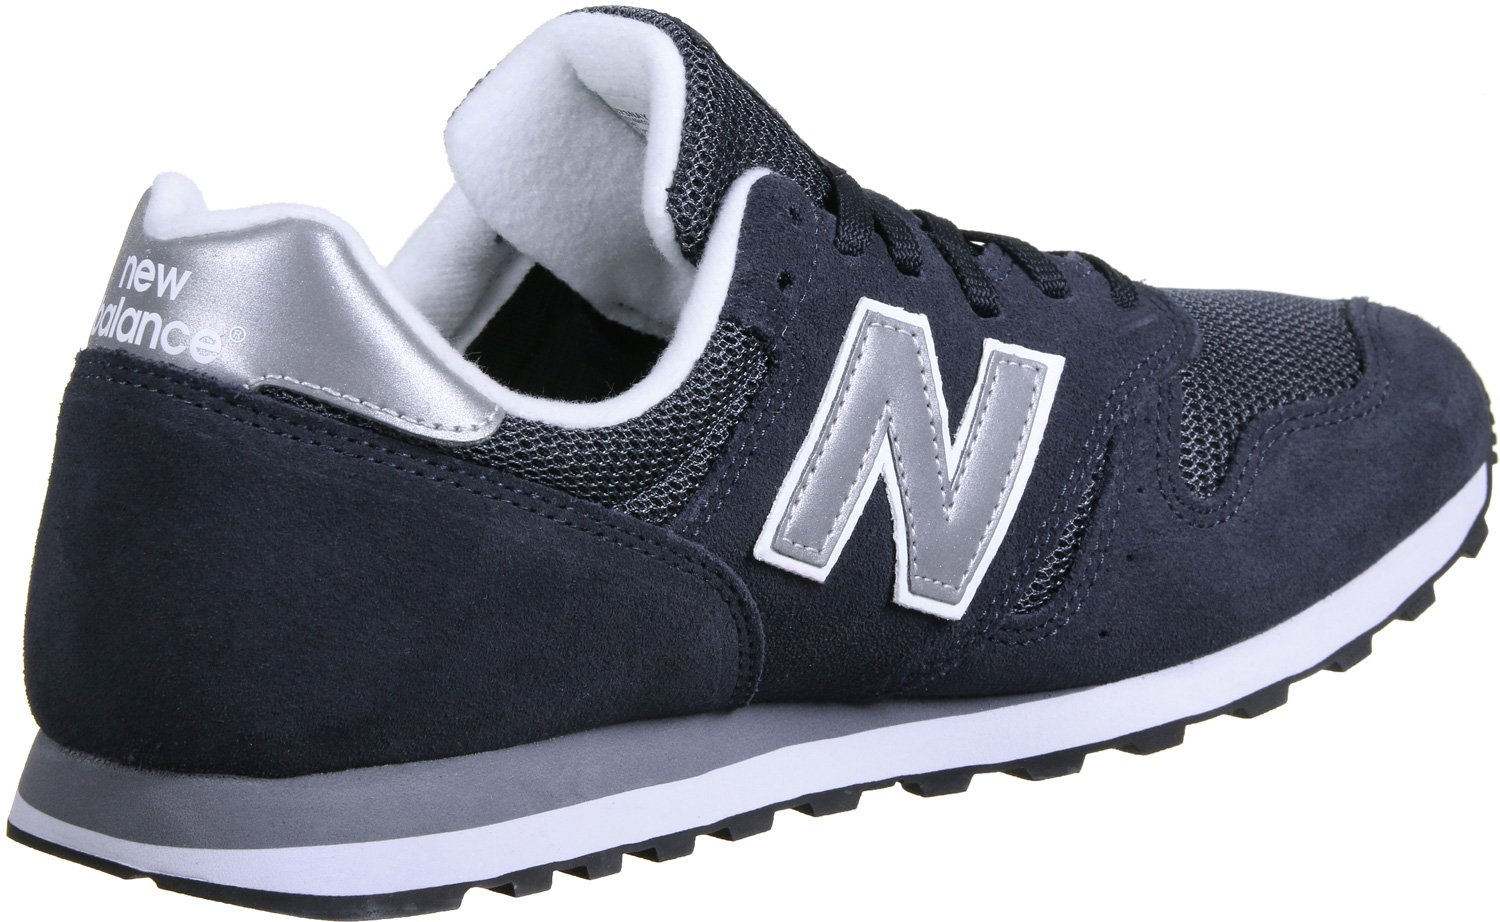 low priced ac7fa 7947e Galleon - New Balance Men's 373 Trainers, Blue, 7 US